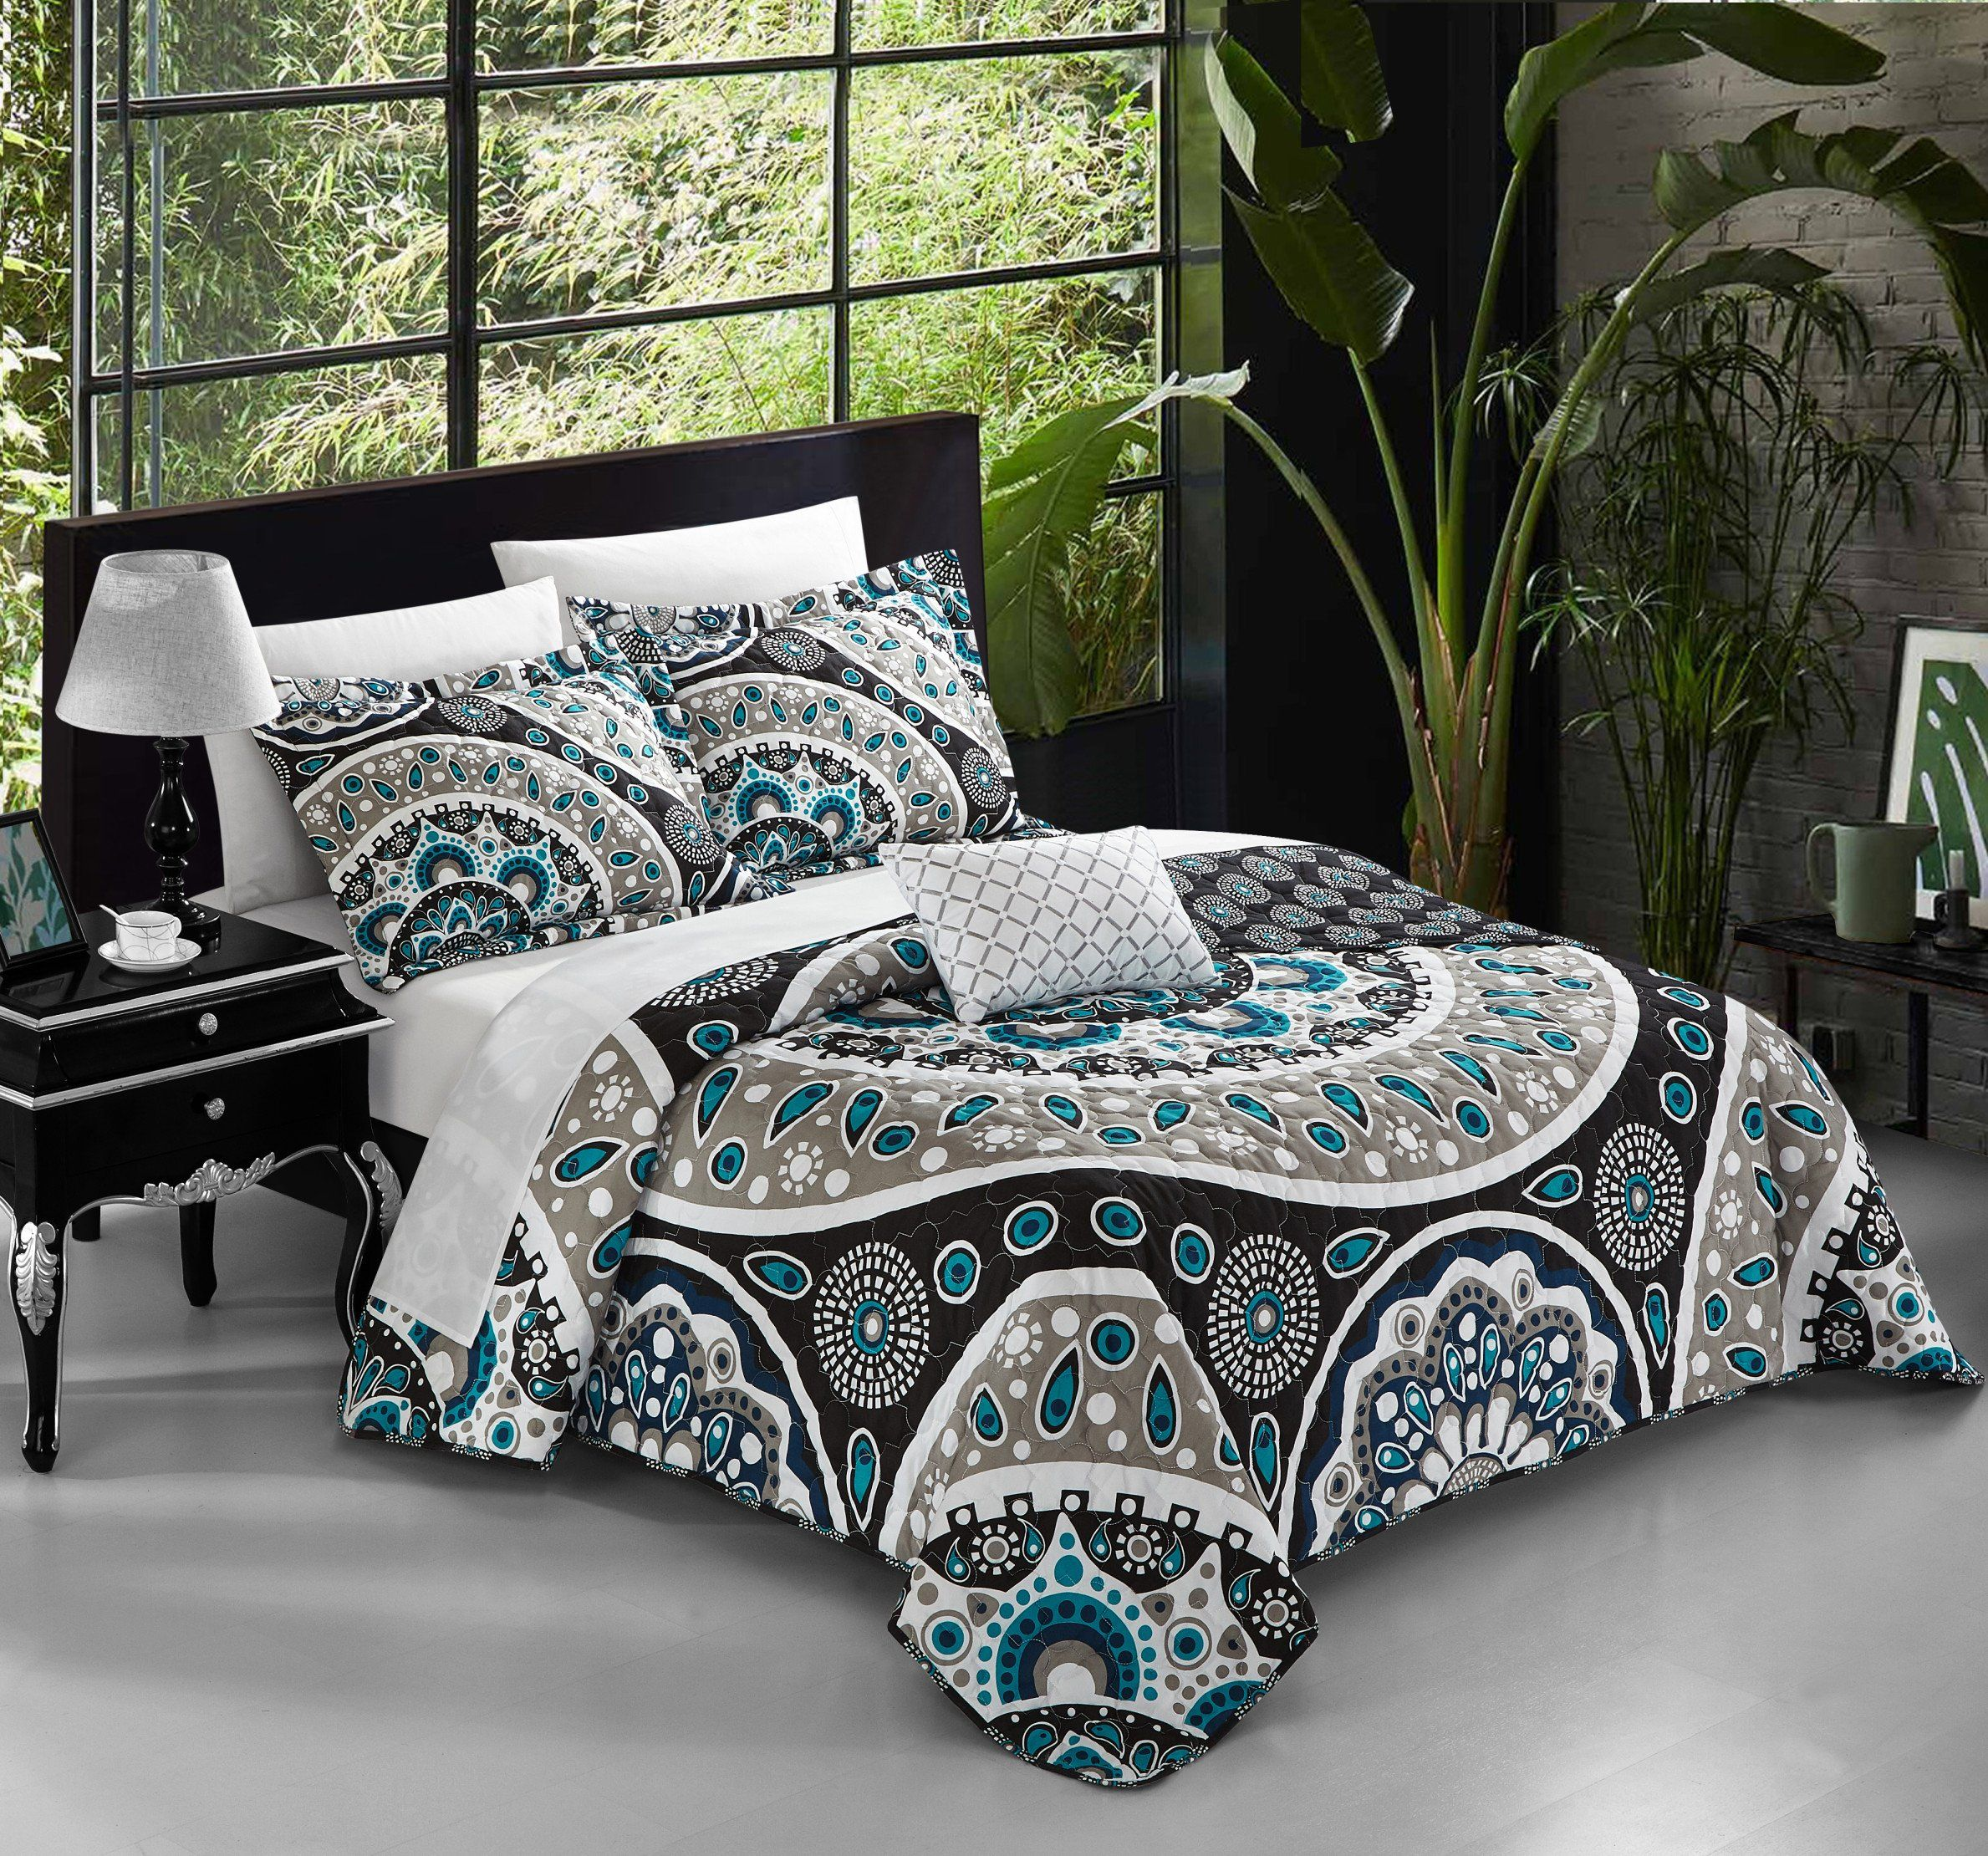 euro ikea boho sets barrel covers king tremendous decoration for bedding sized crate cover ideas and unique black size bedroom sham duvets duvet